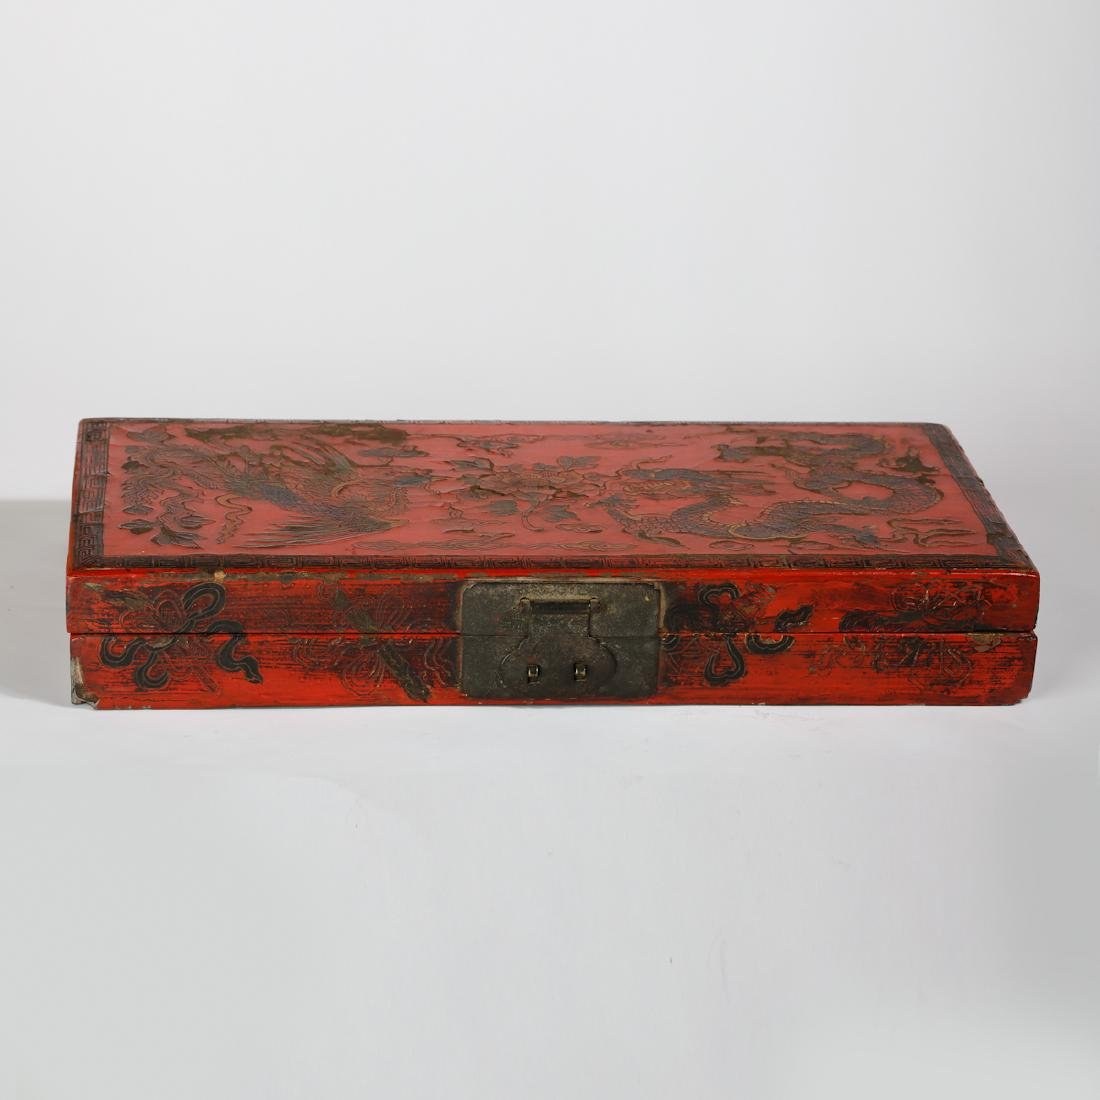 CHINESE LACQUER WOOD DRAGON AND PHOENIX BOX